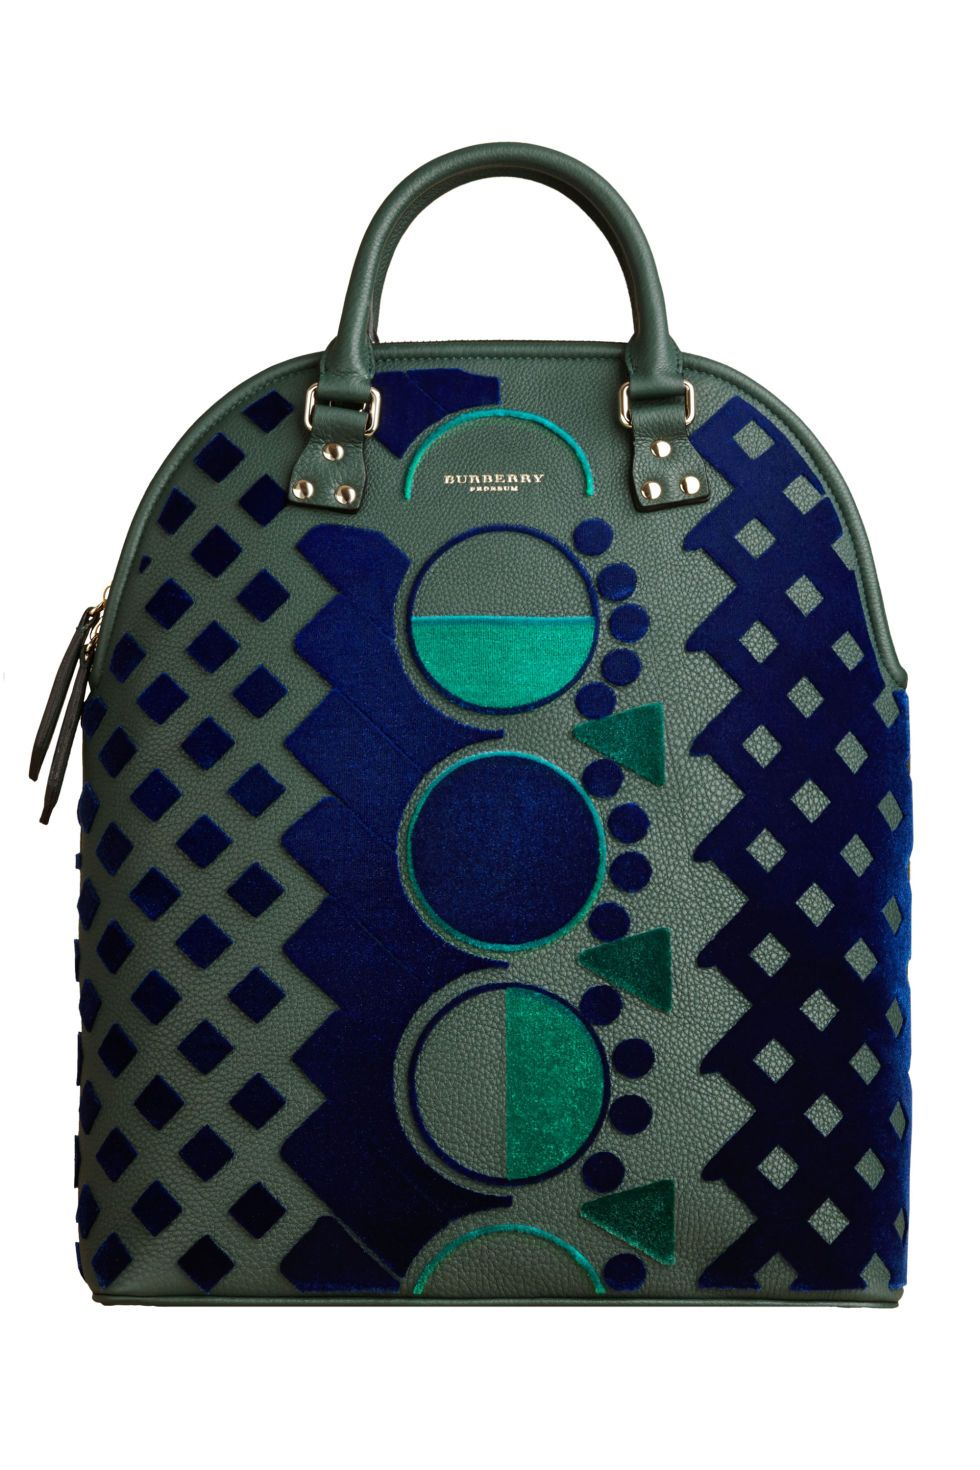 777bcd41e Pin by Elenusj on clothing | Pinterest | Baja east, Bags and Drawstring  backpack